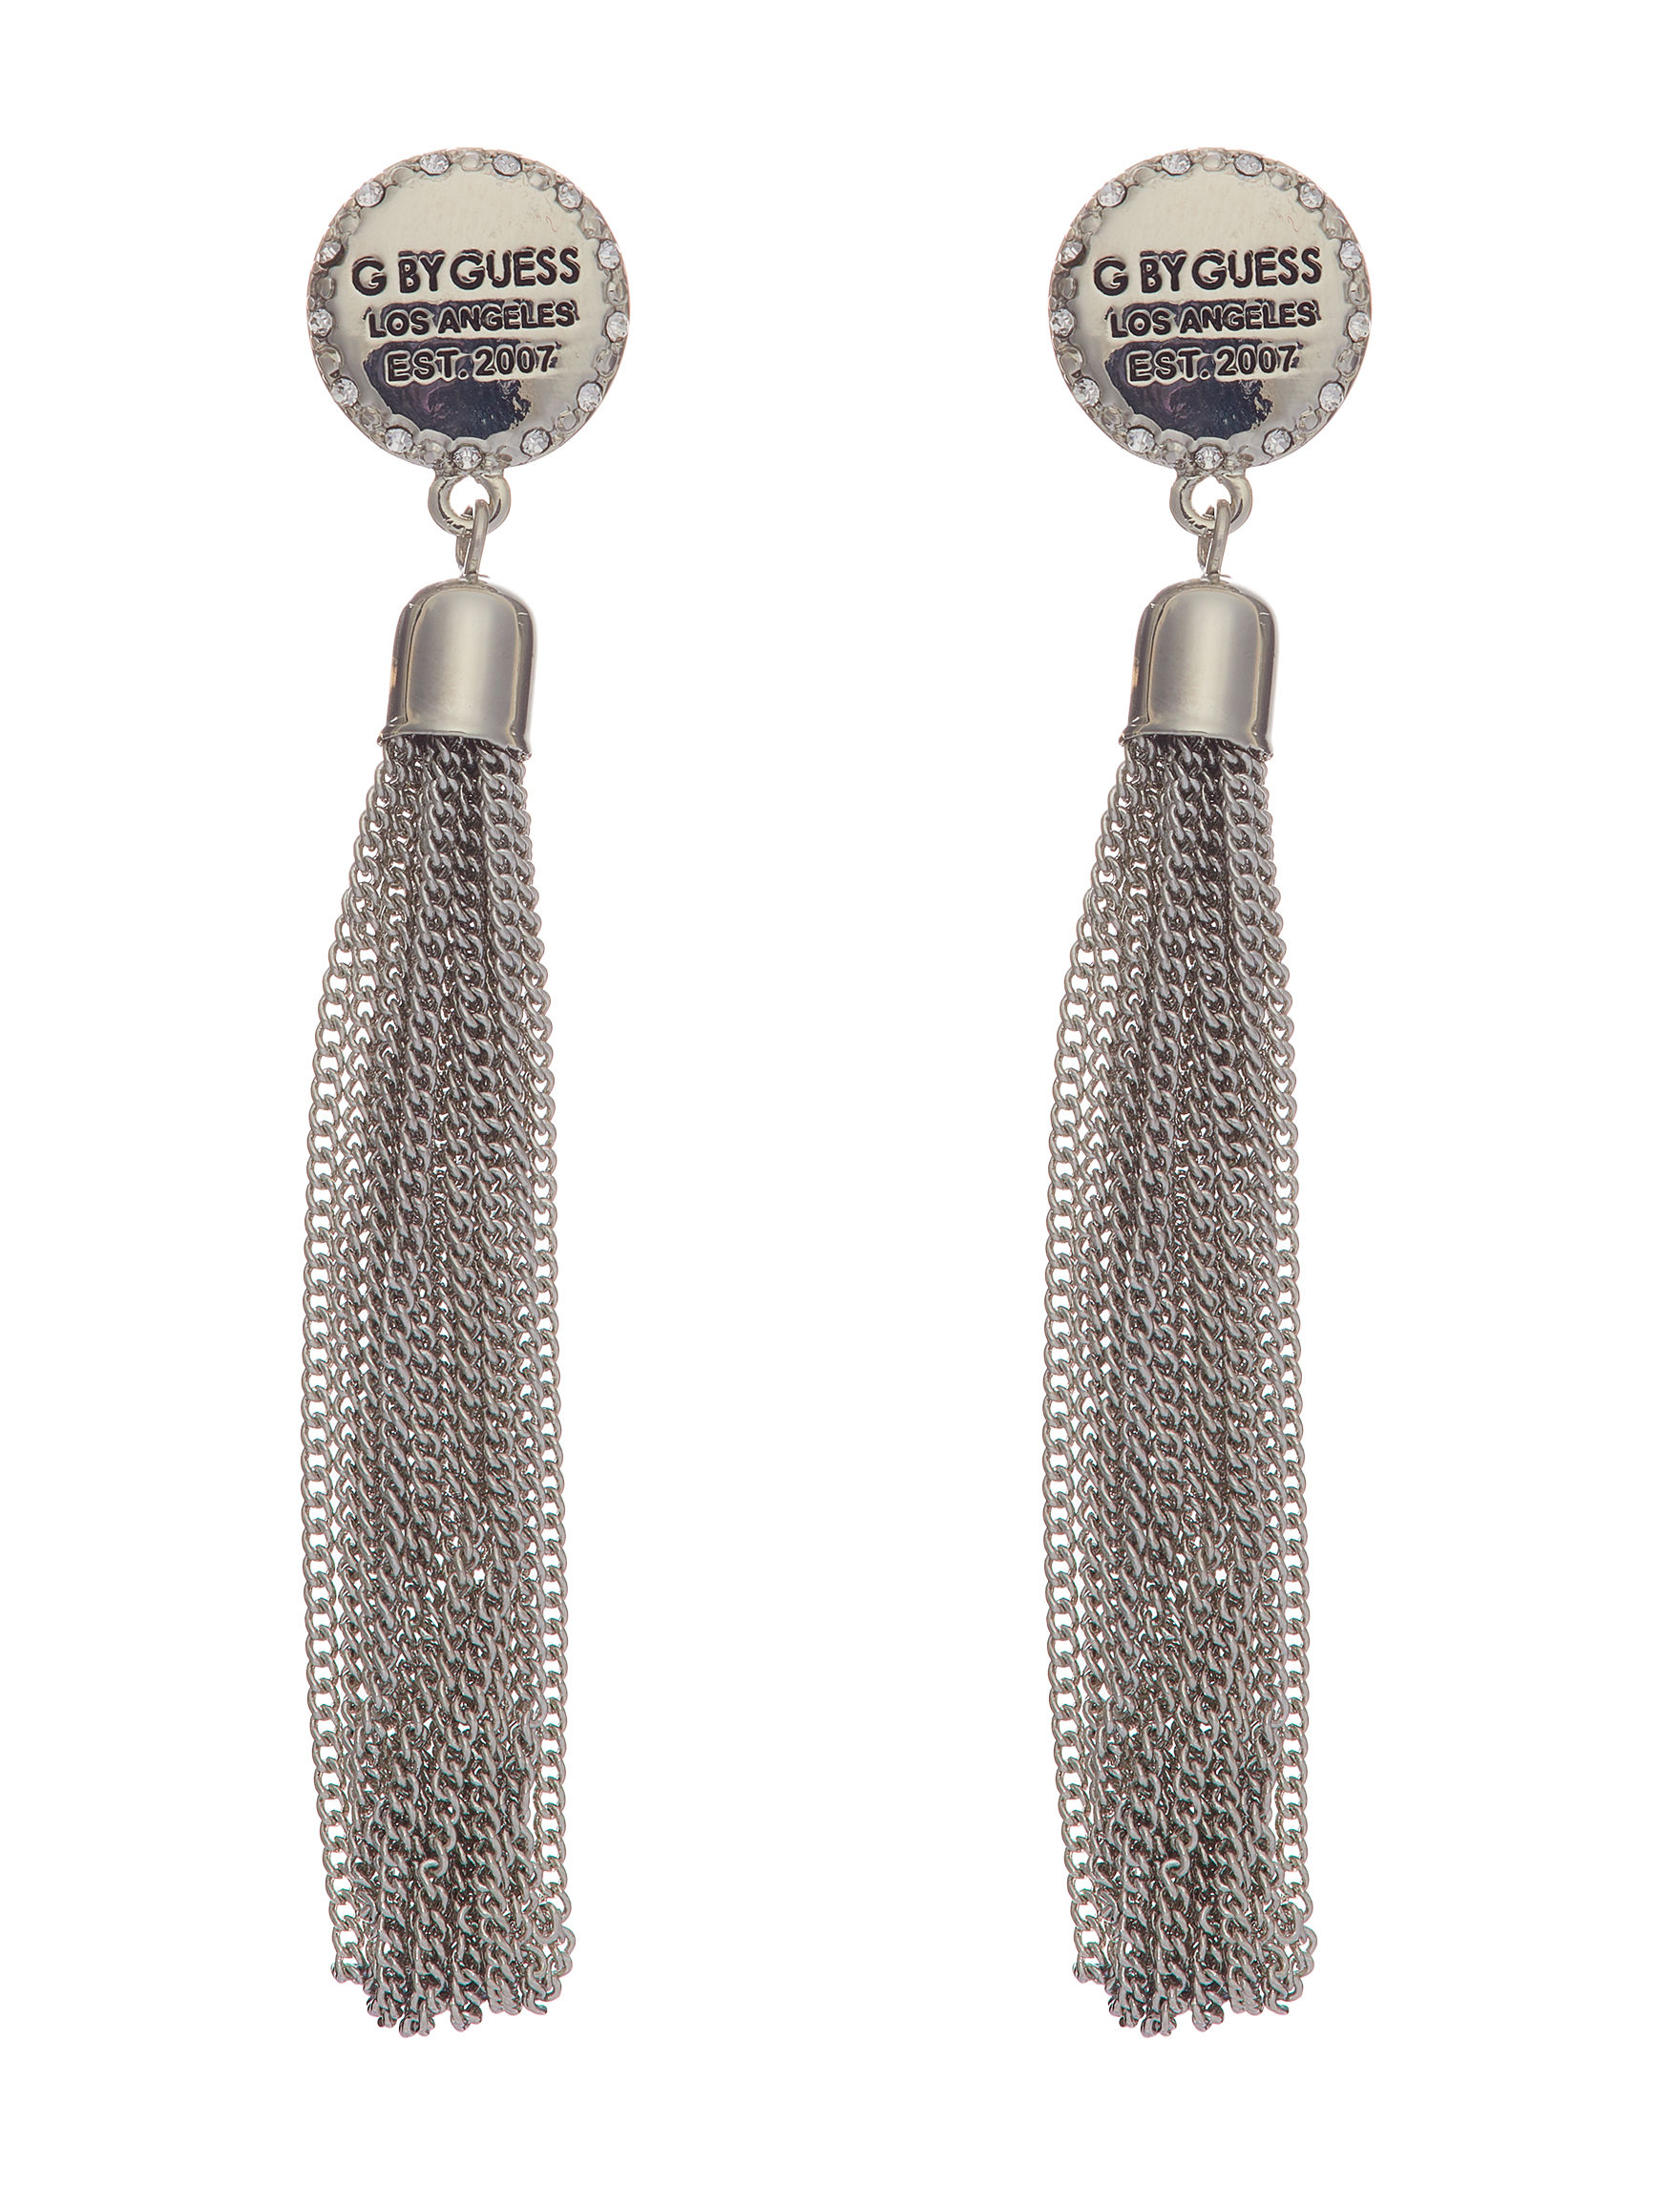 G by Guess Silver Drops Earrings Fashion Jewelry